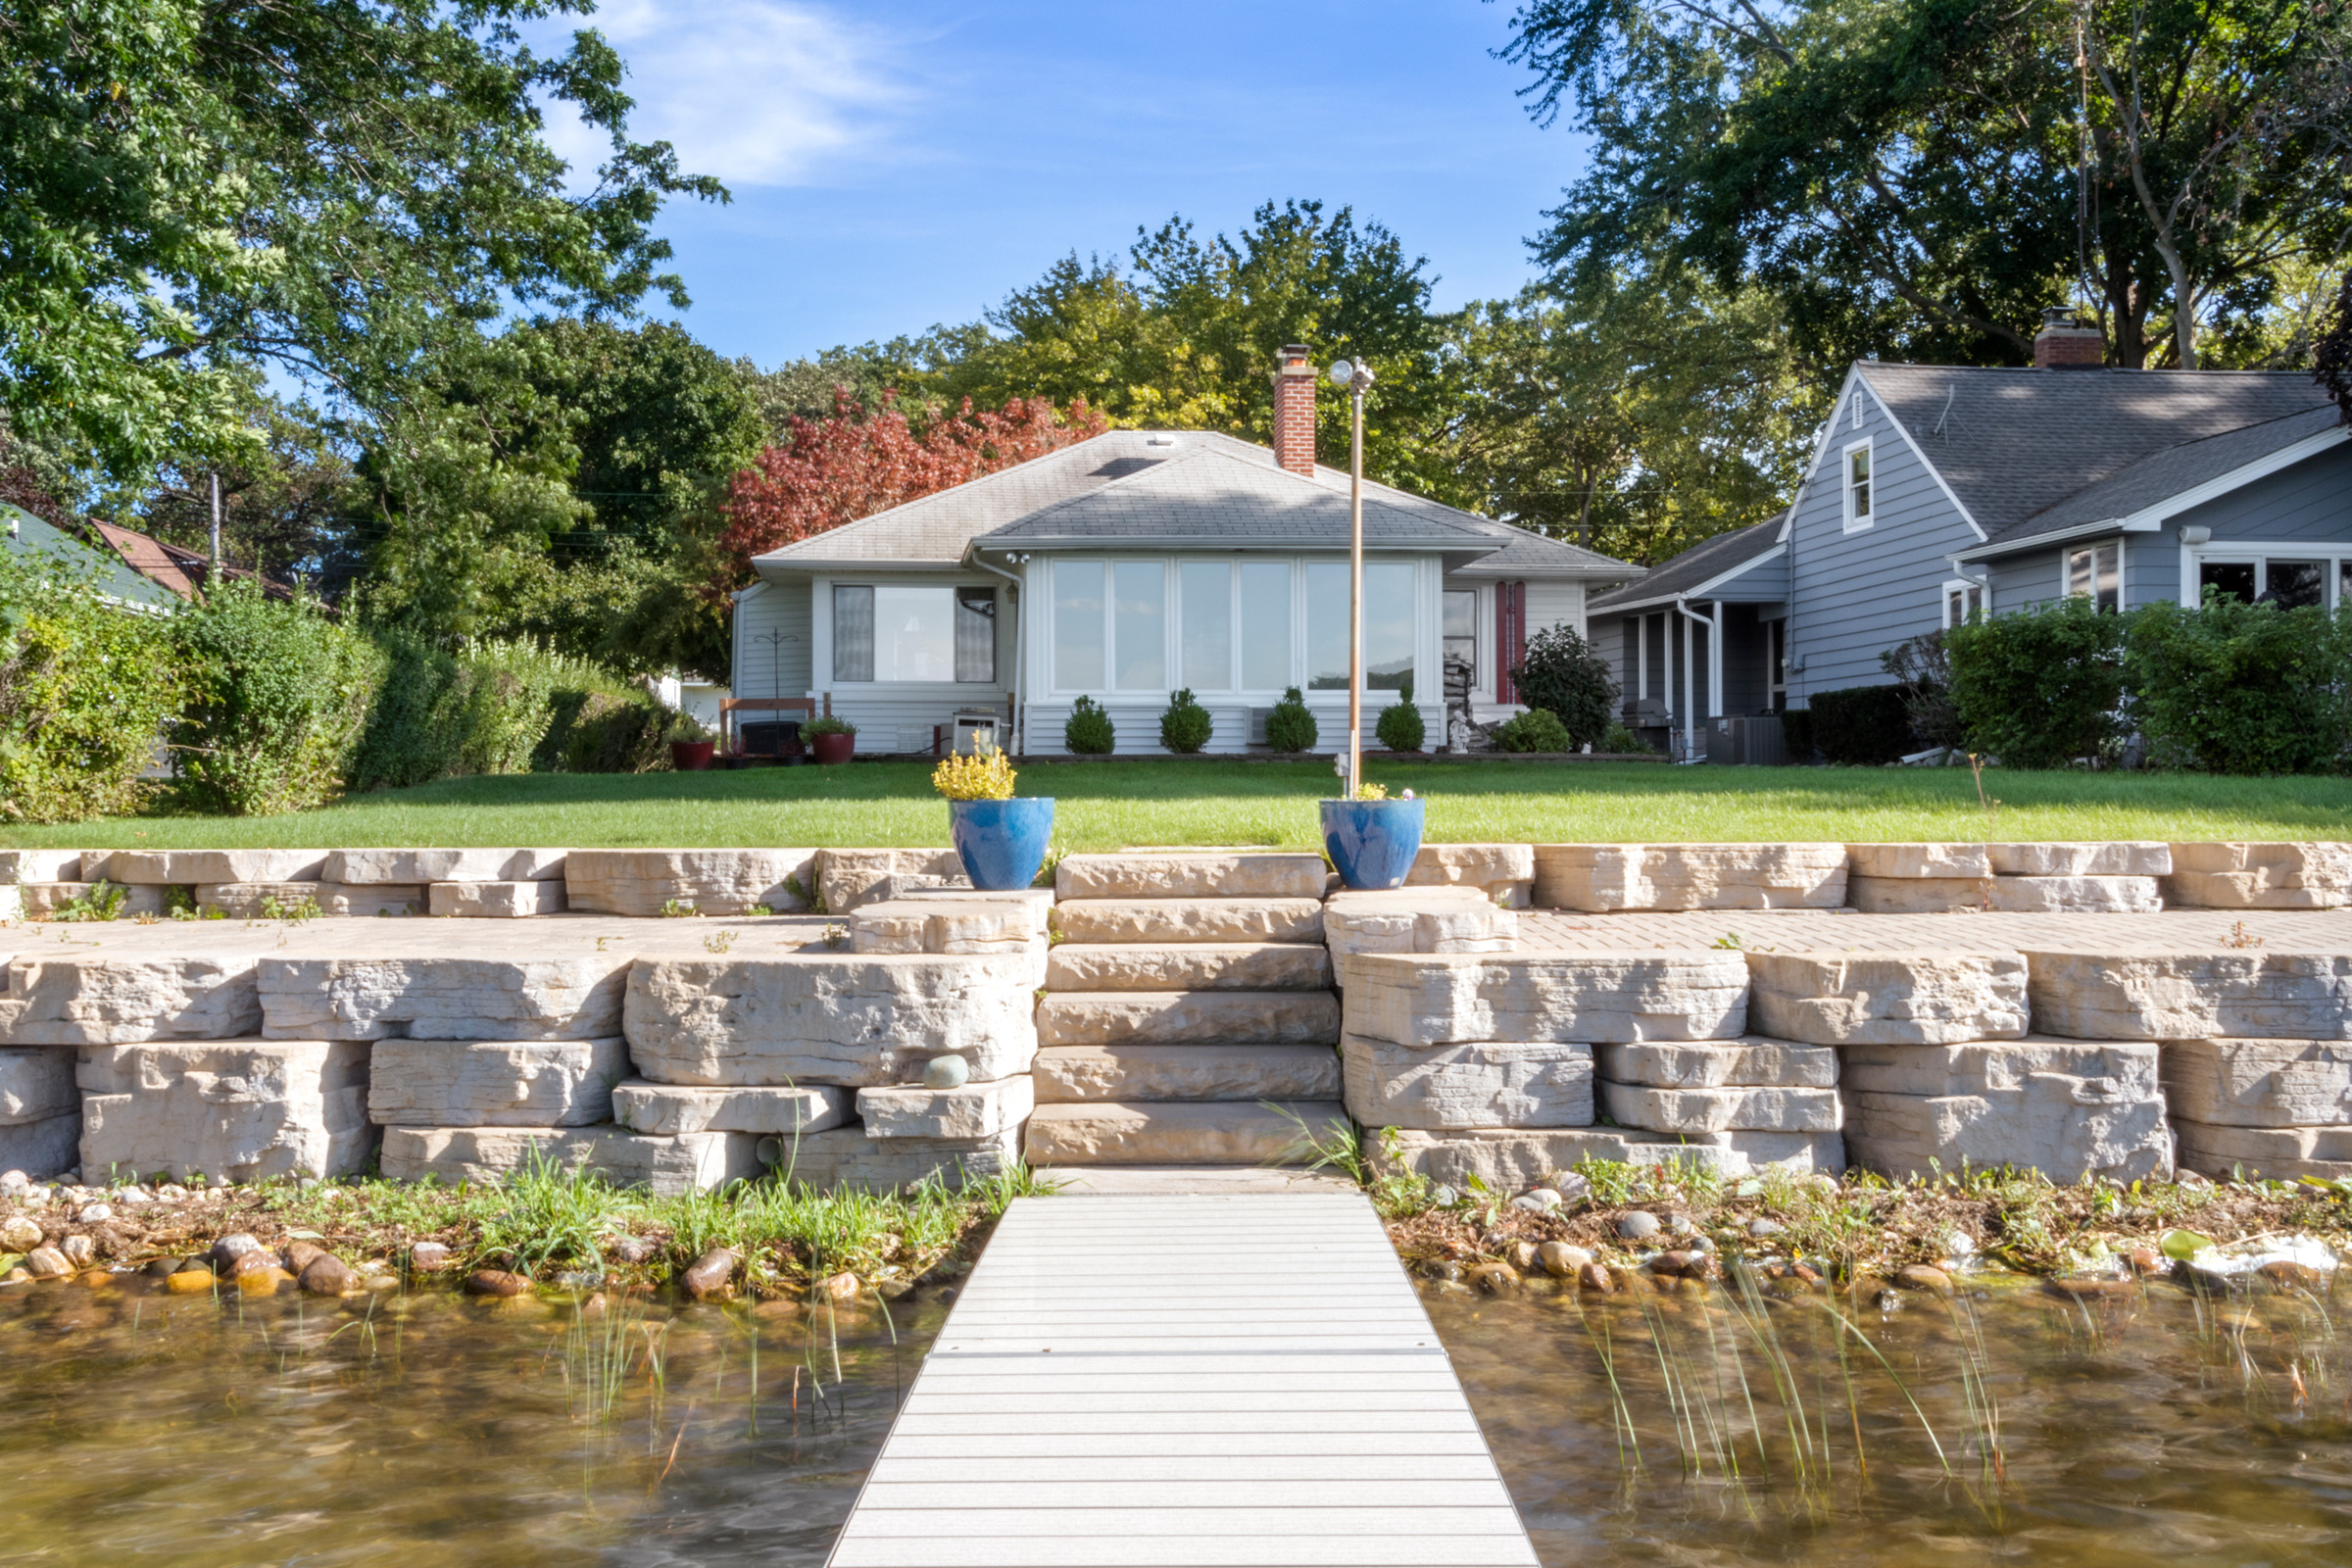 SOLD! 2BR, 1.5BA Ranch with Powers Lake Frontage | 9030 Lake Park Dr, Powers Lake WI